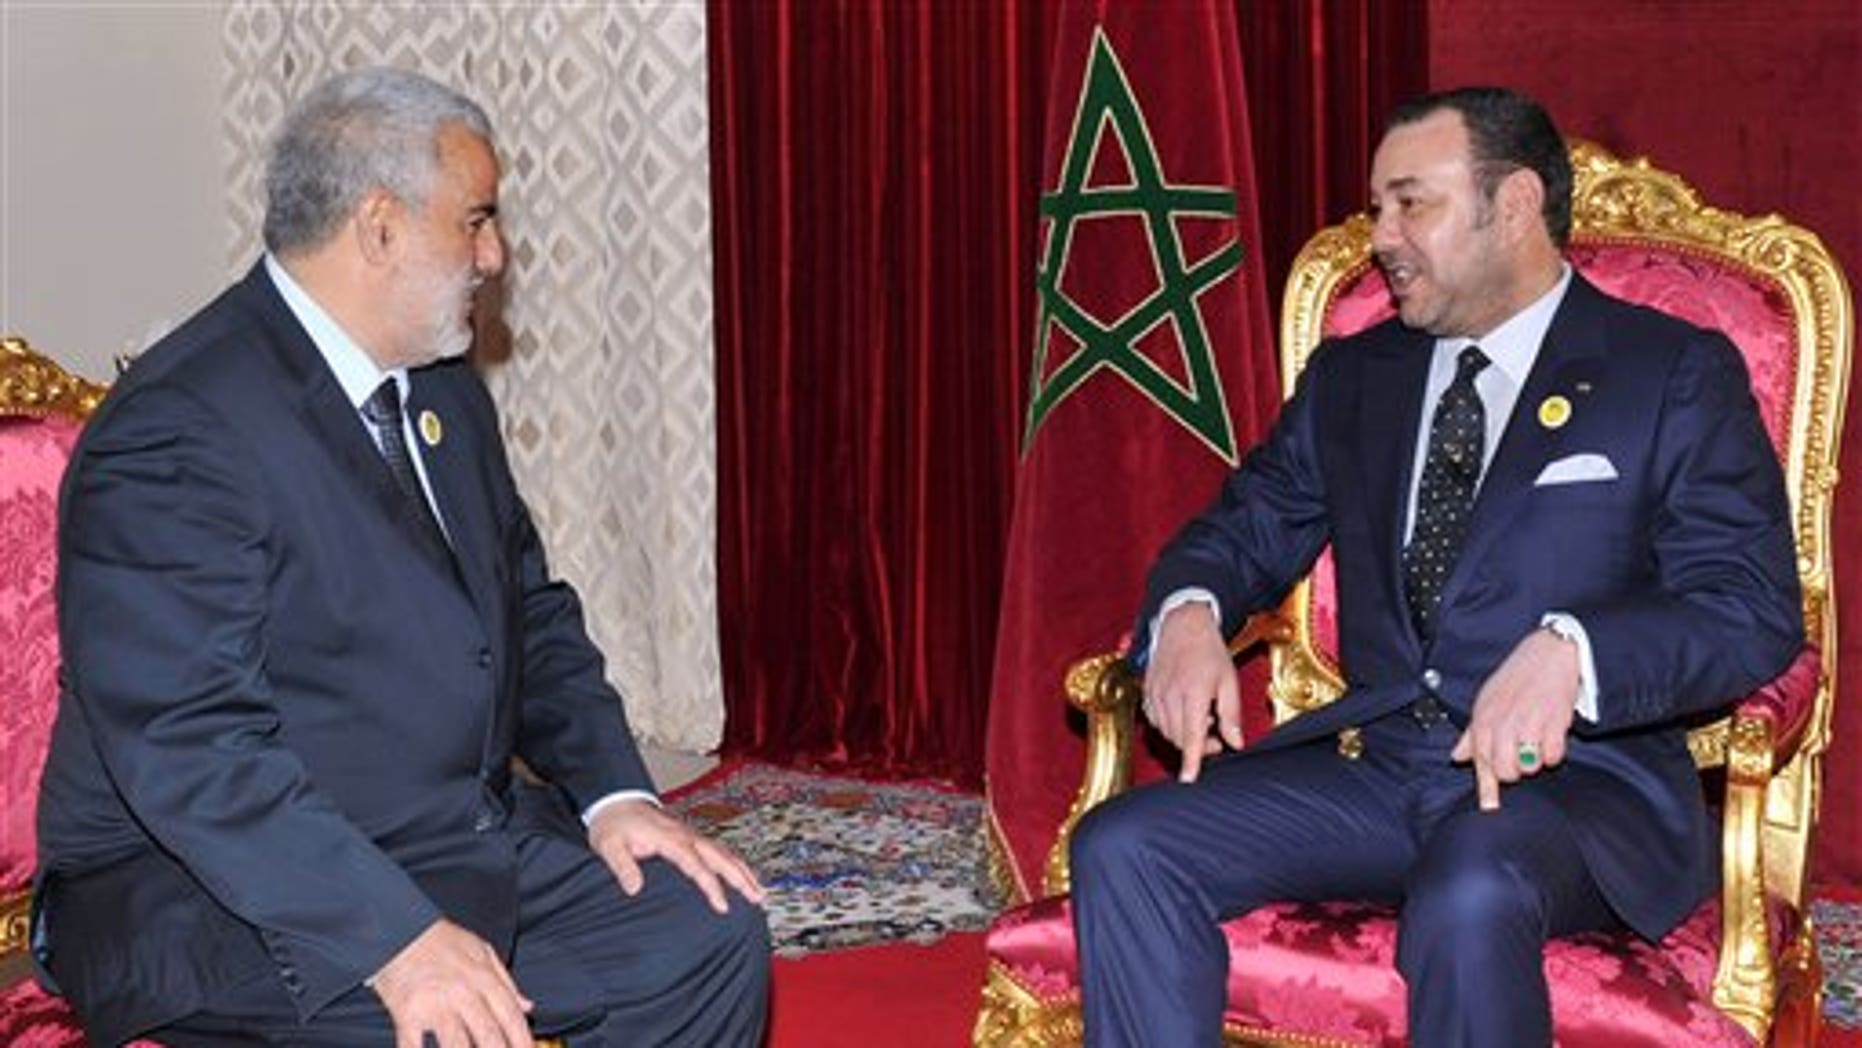 November 29: King Mohammed VI, right, receives Abdelilah Benkirane, the secretary general of the Justice and Development Party, to appoint him as the head of the country's new government, in the mountain town of Midelt, Morocco.